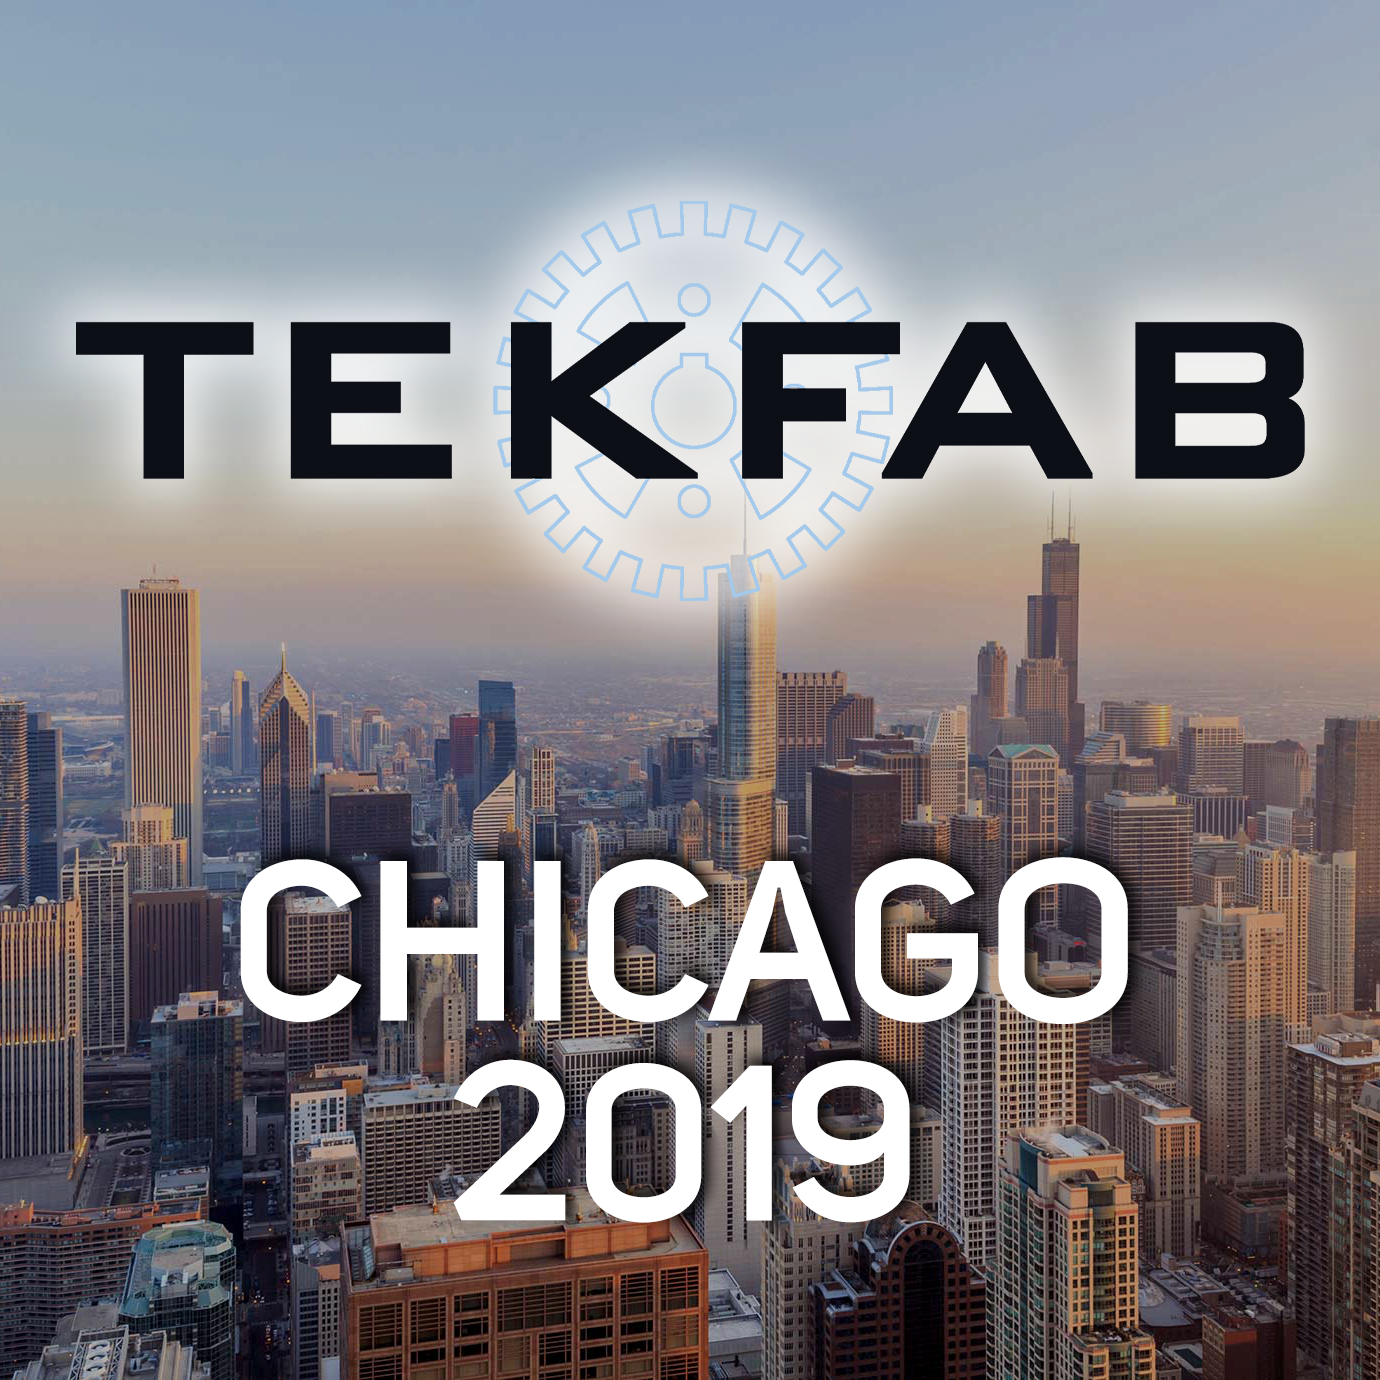 Fabtech 2019 in Chicago!